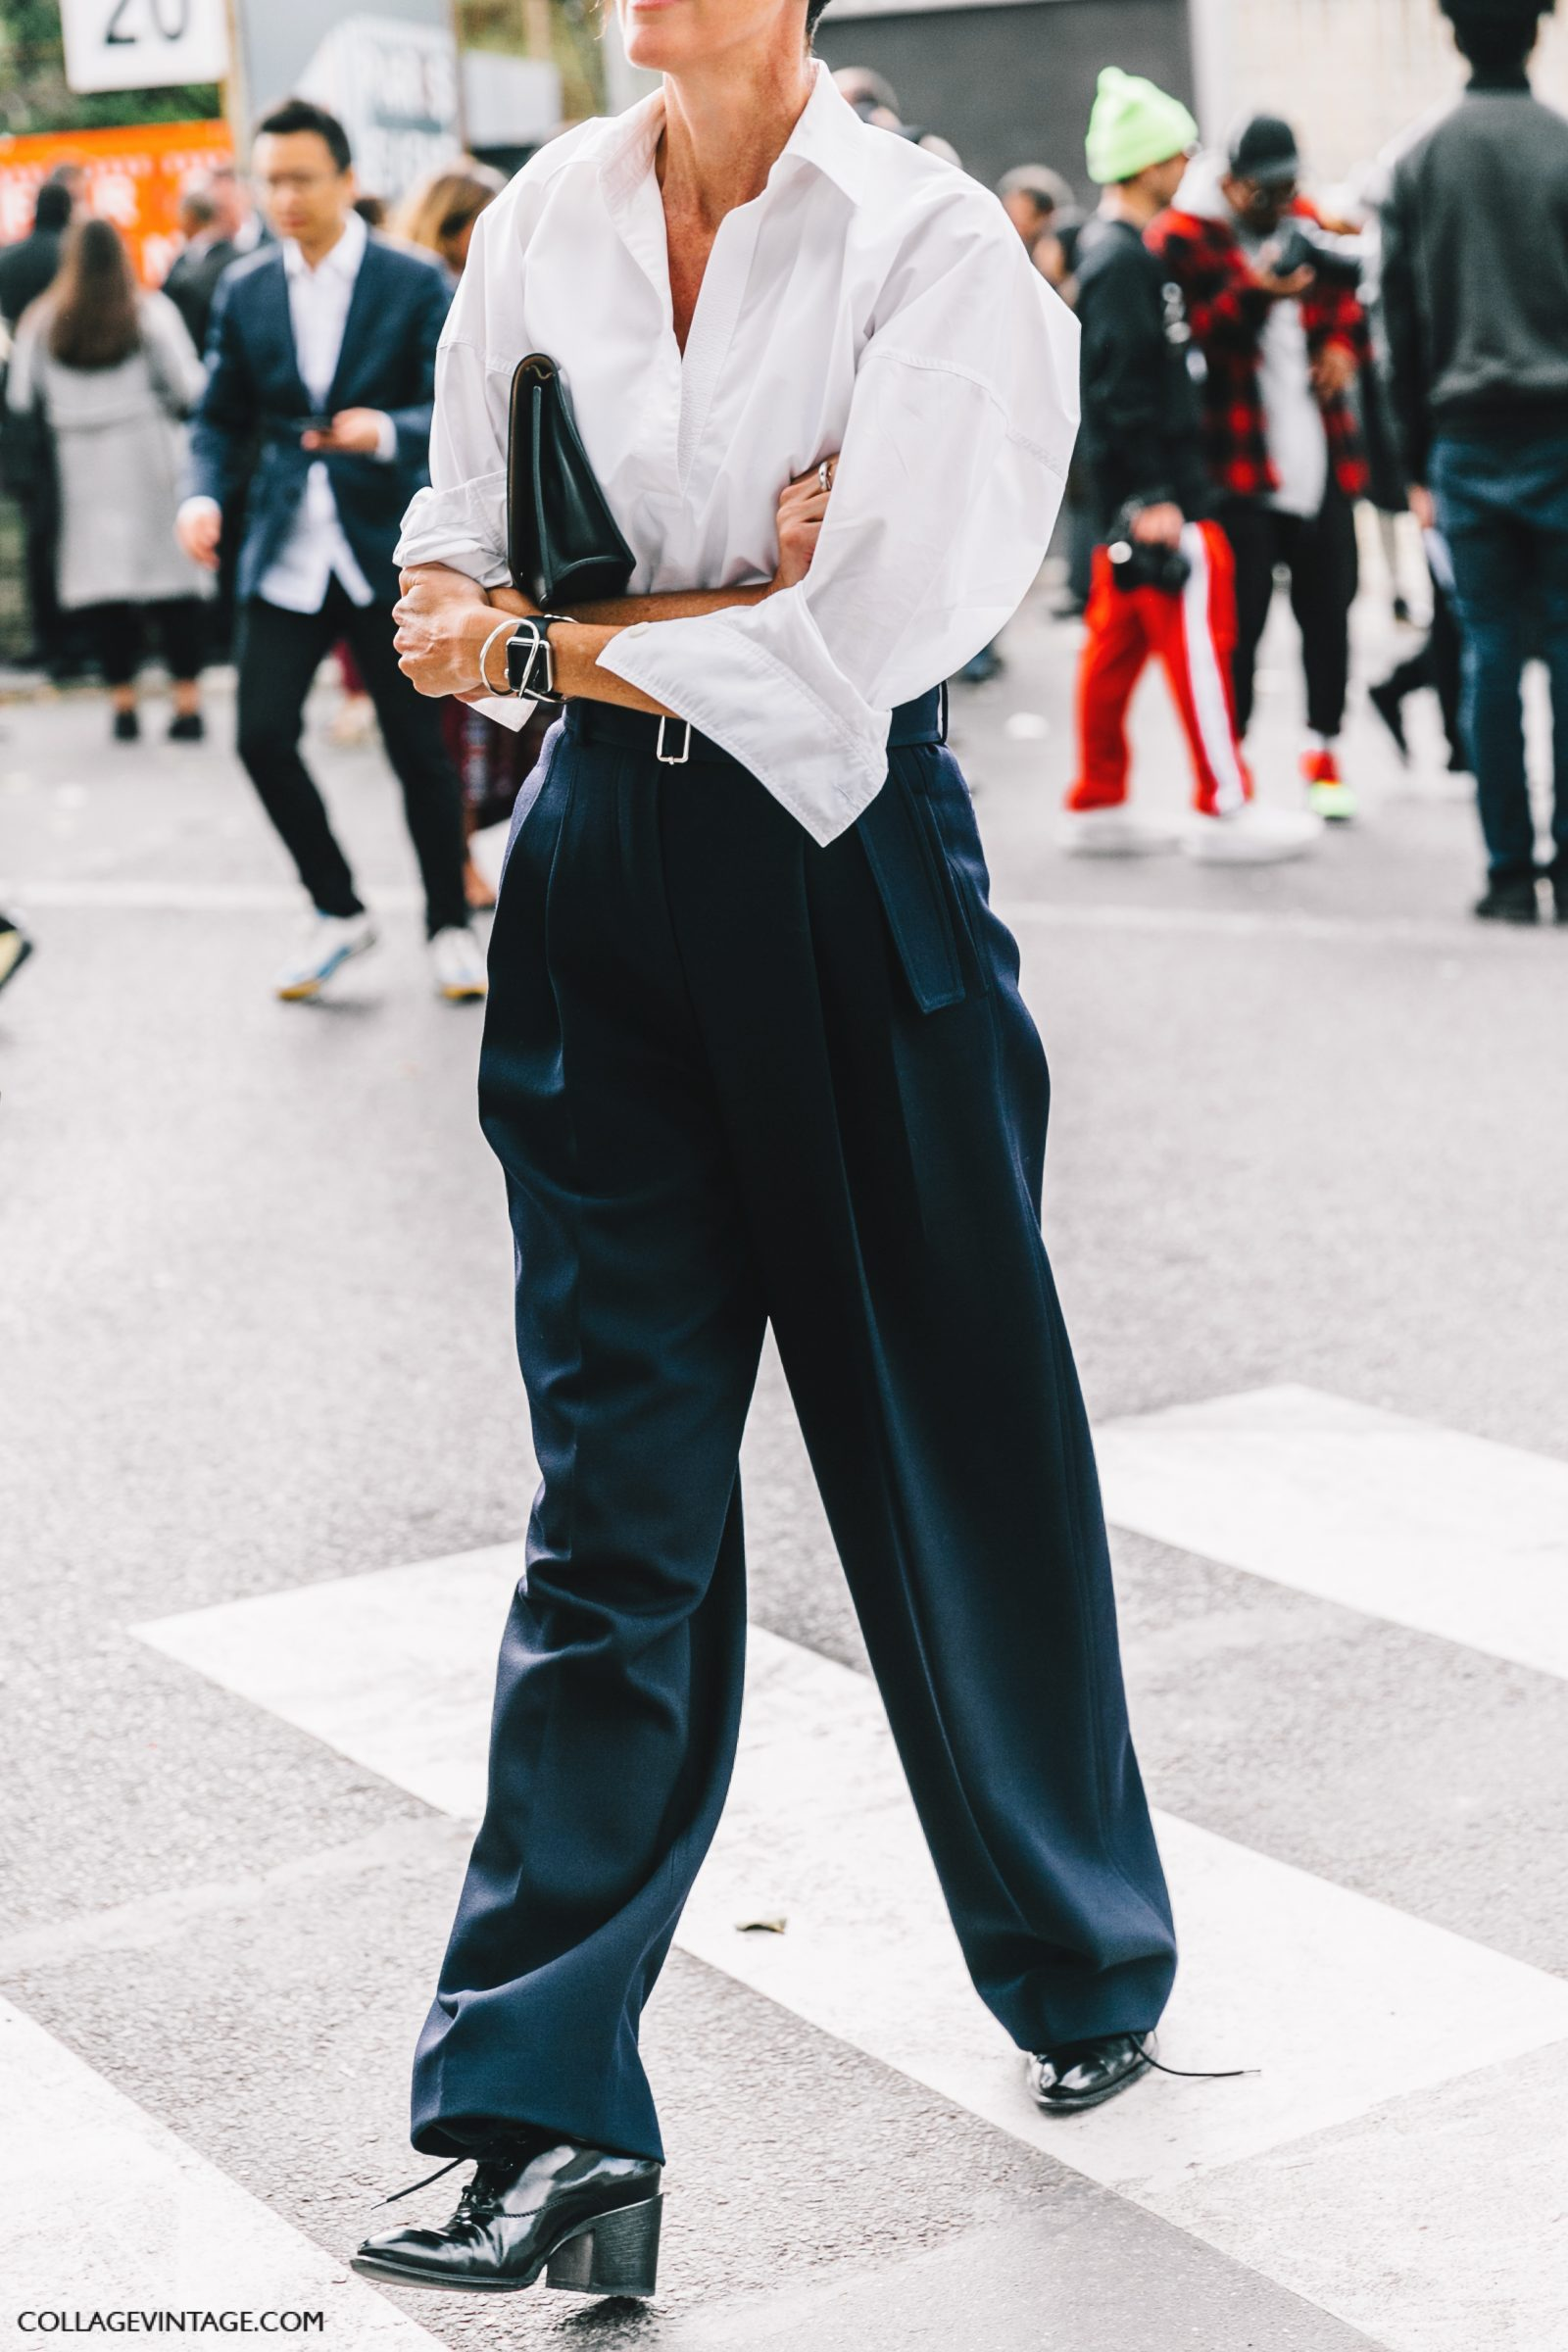 pfw-paris_fashion_week_ss17-street_style-outfits-collage_vintage-valentino-balenciaga-celine-51